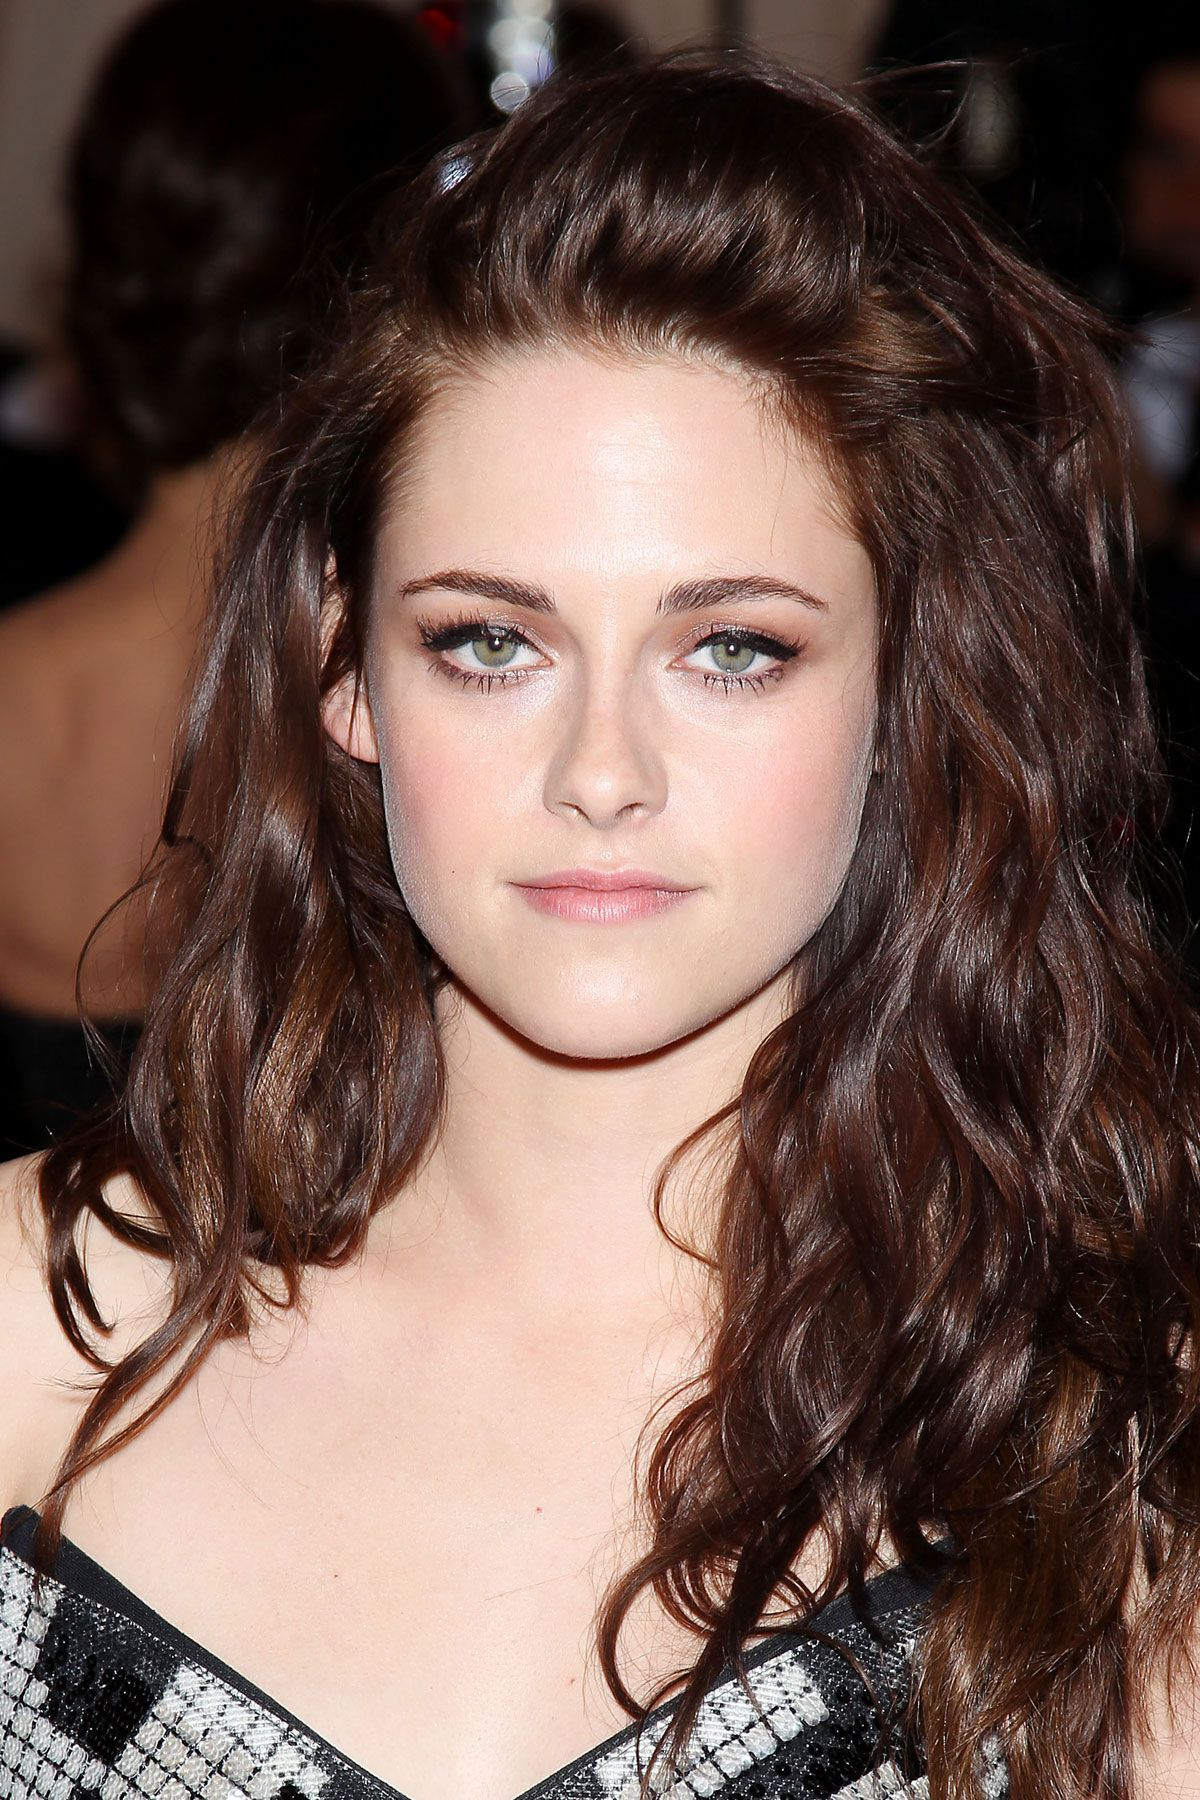 Kristen Stewart At Metropolitan Museum Of Art S Costume Gala 2012 In Hair Pale Skin Brown Hair Pale Skin Kristen Stewart Hair